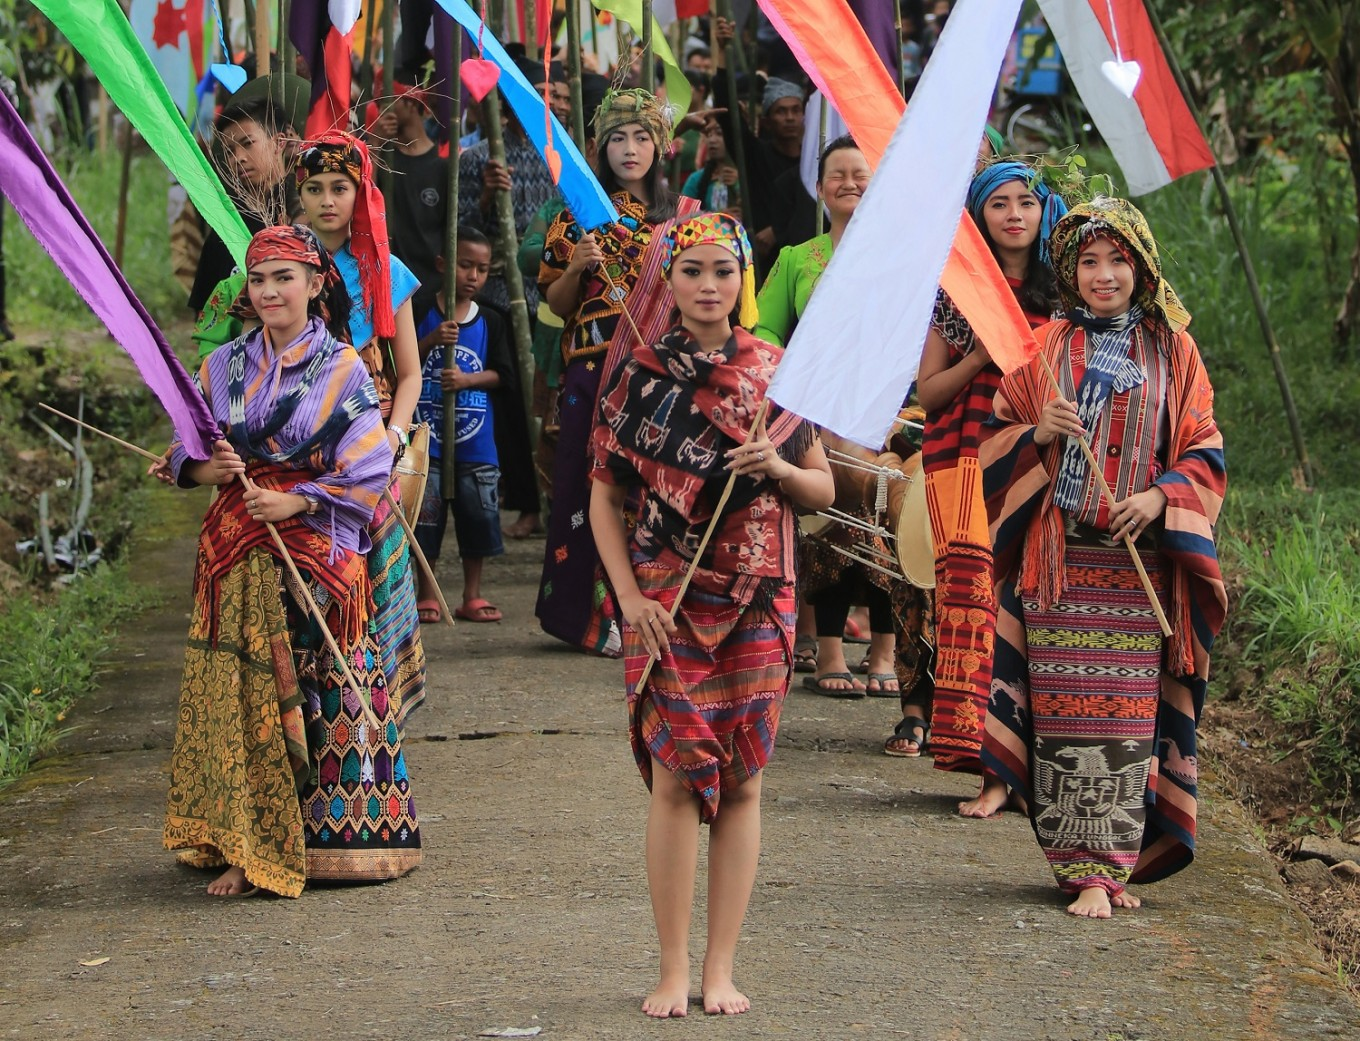 The festival was kicked off with a flag parade from Gerdu village to a rice field.